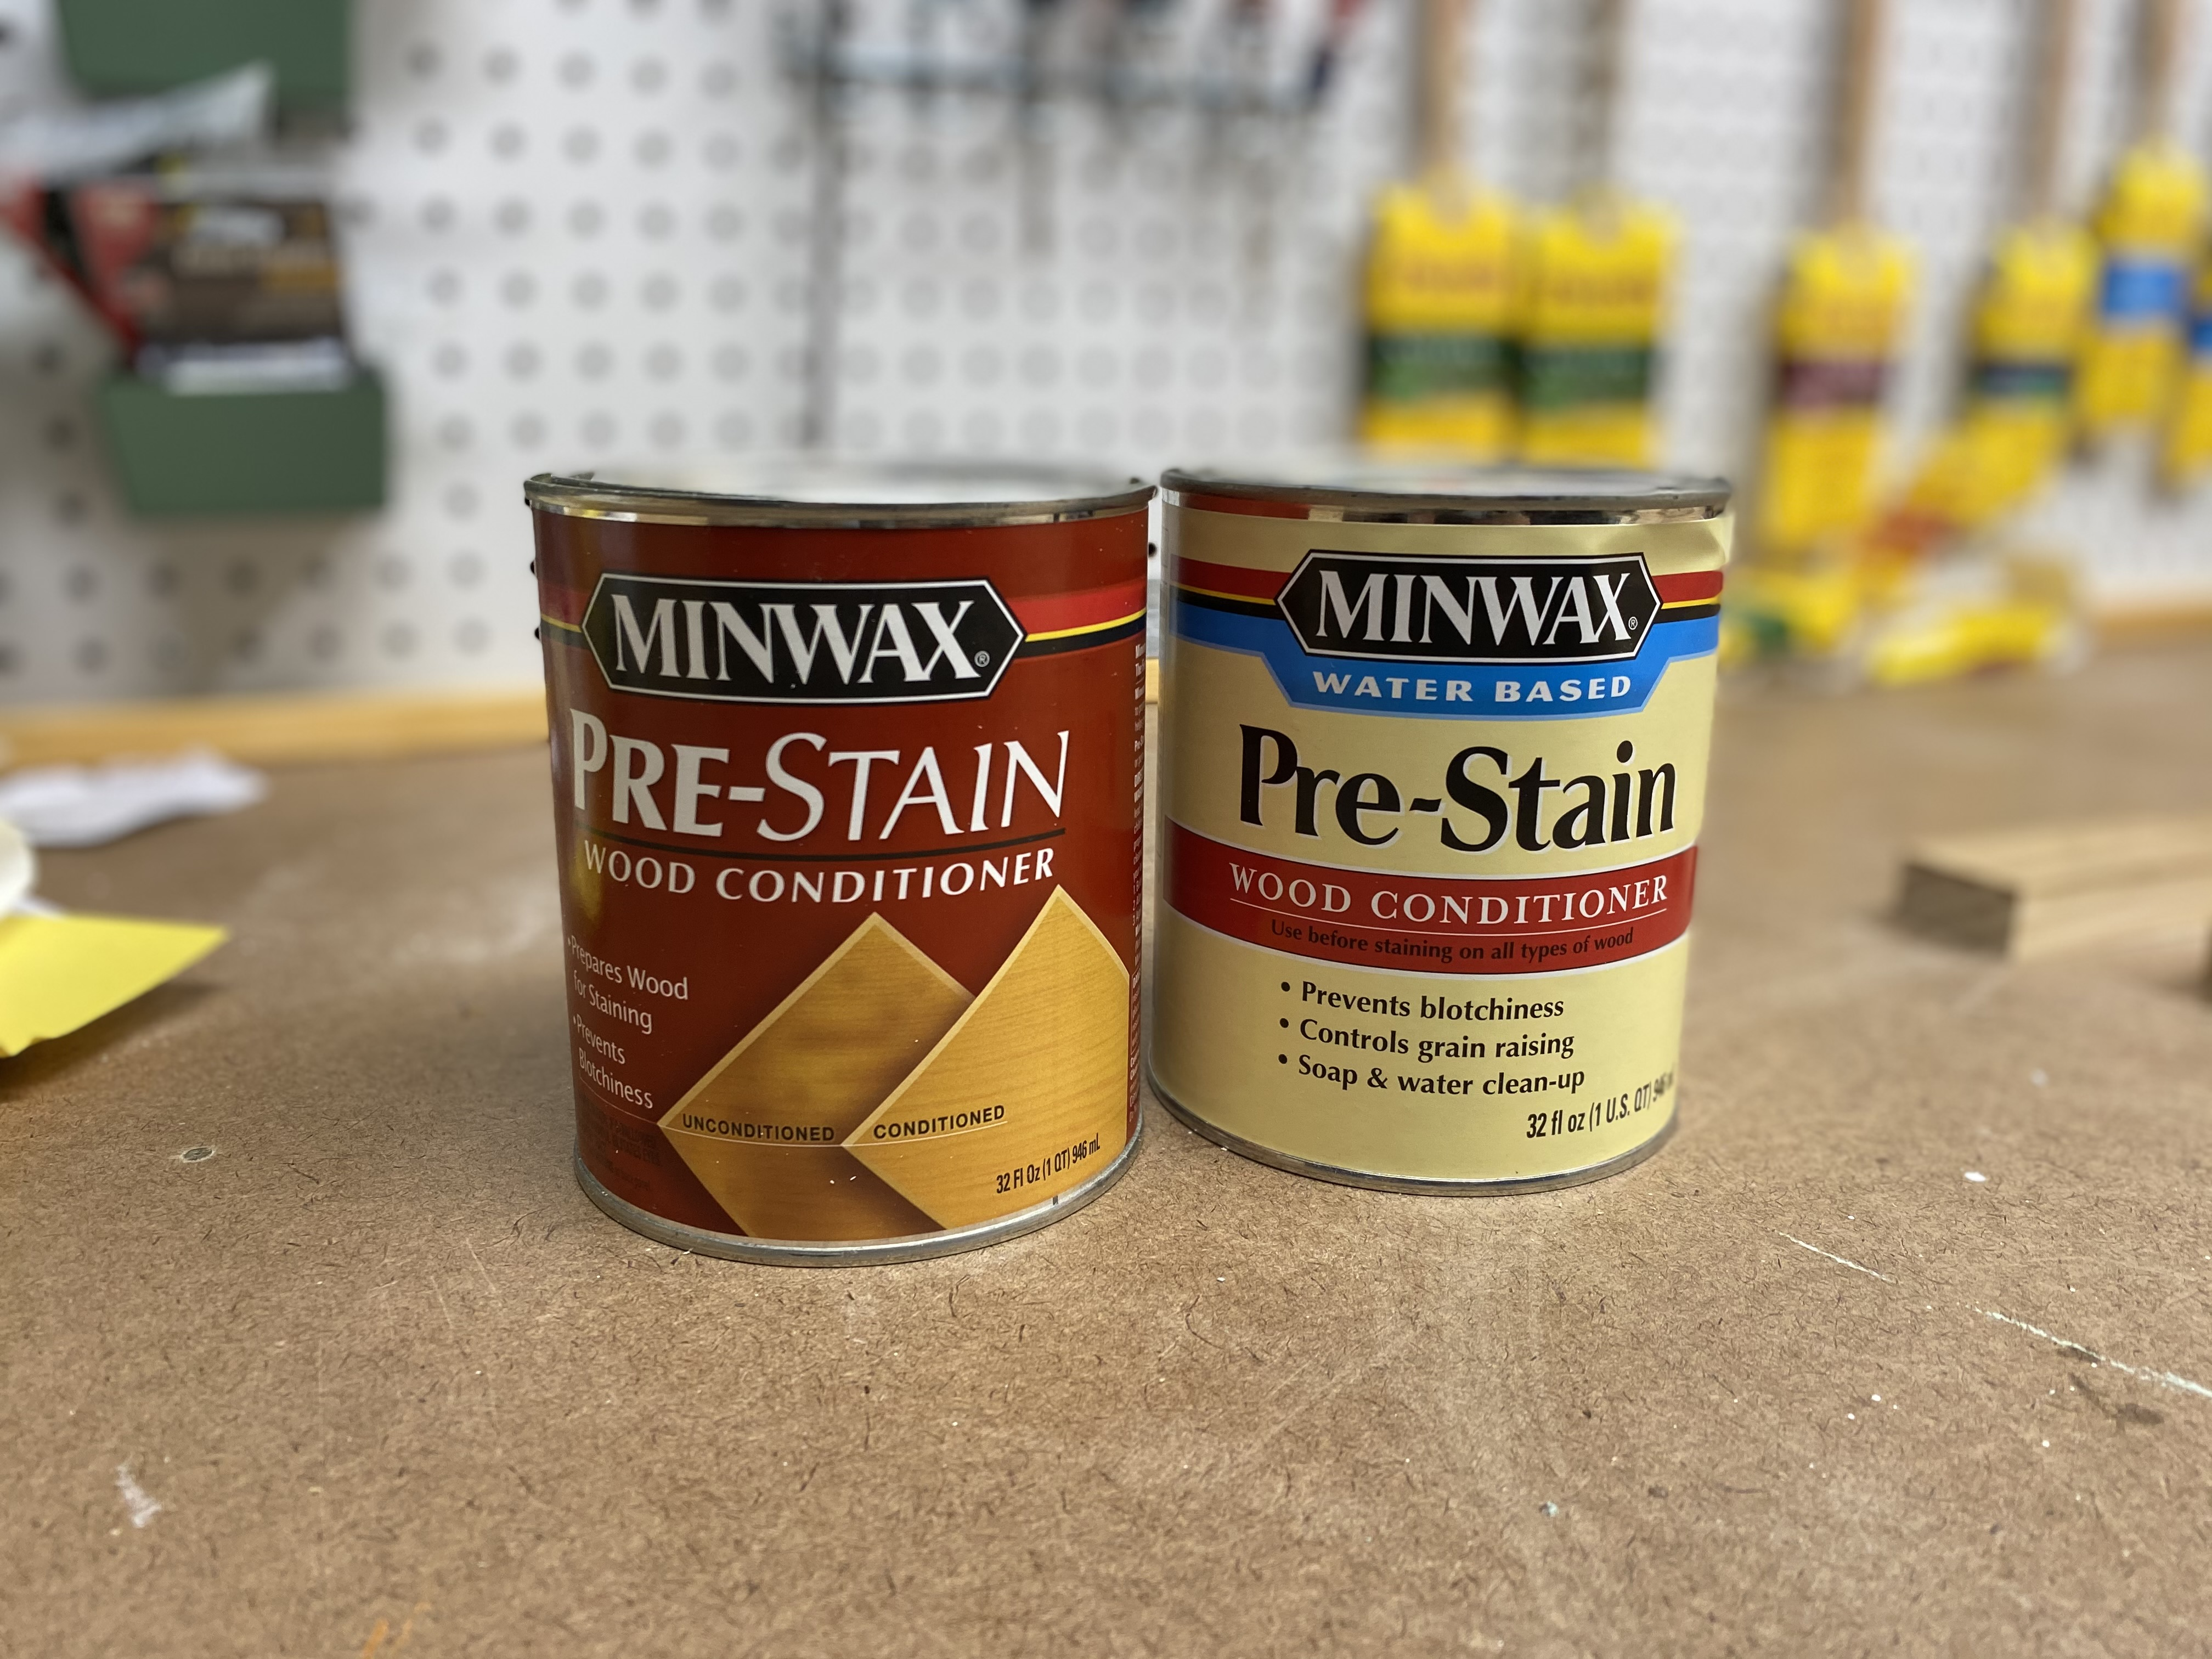 Pre-stain wood conditioner in oil based and water based